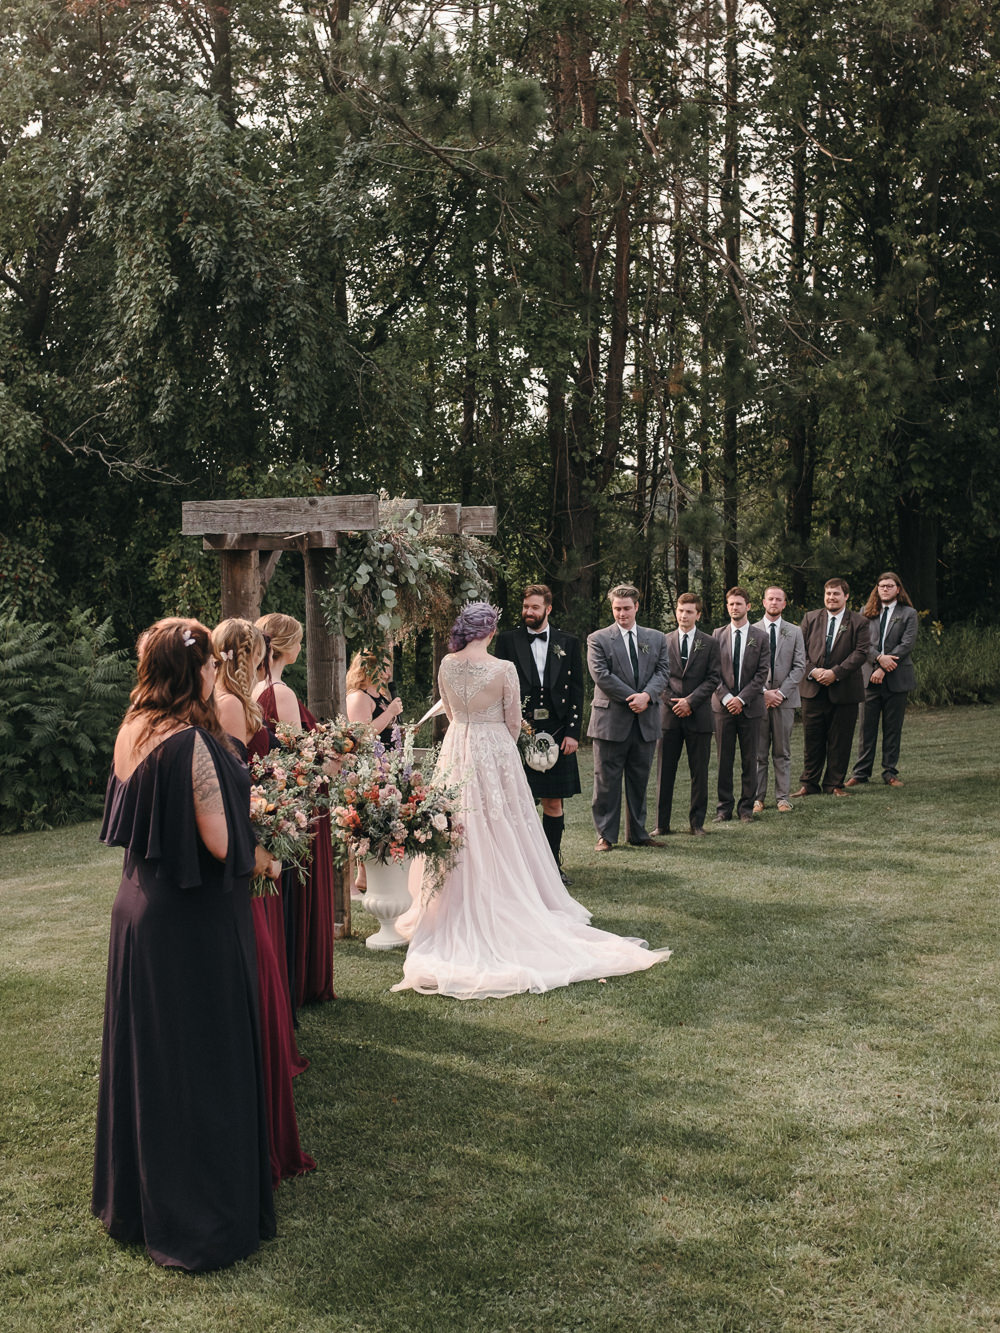 Flowers Ceremony Aisle Flower Arch Arbour Fantasy Nerdy Wedding Eric Lundgren Photography